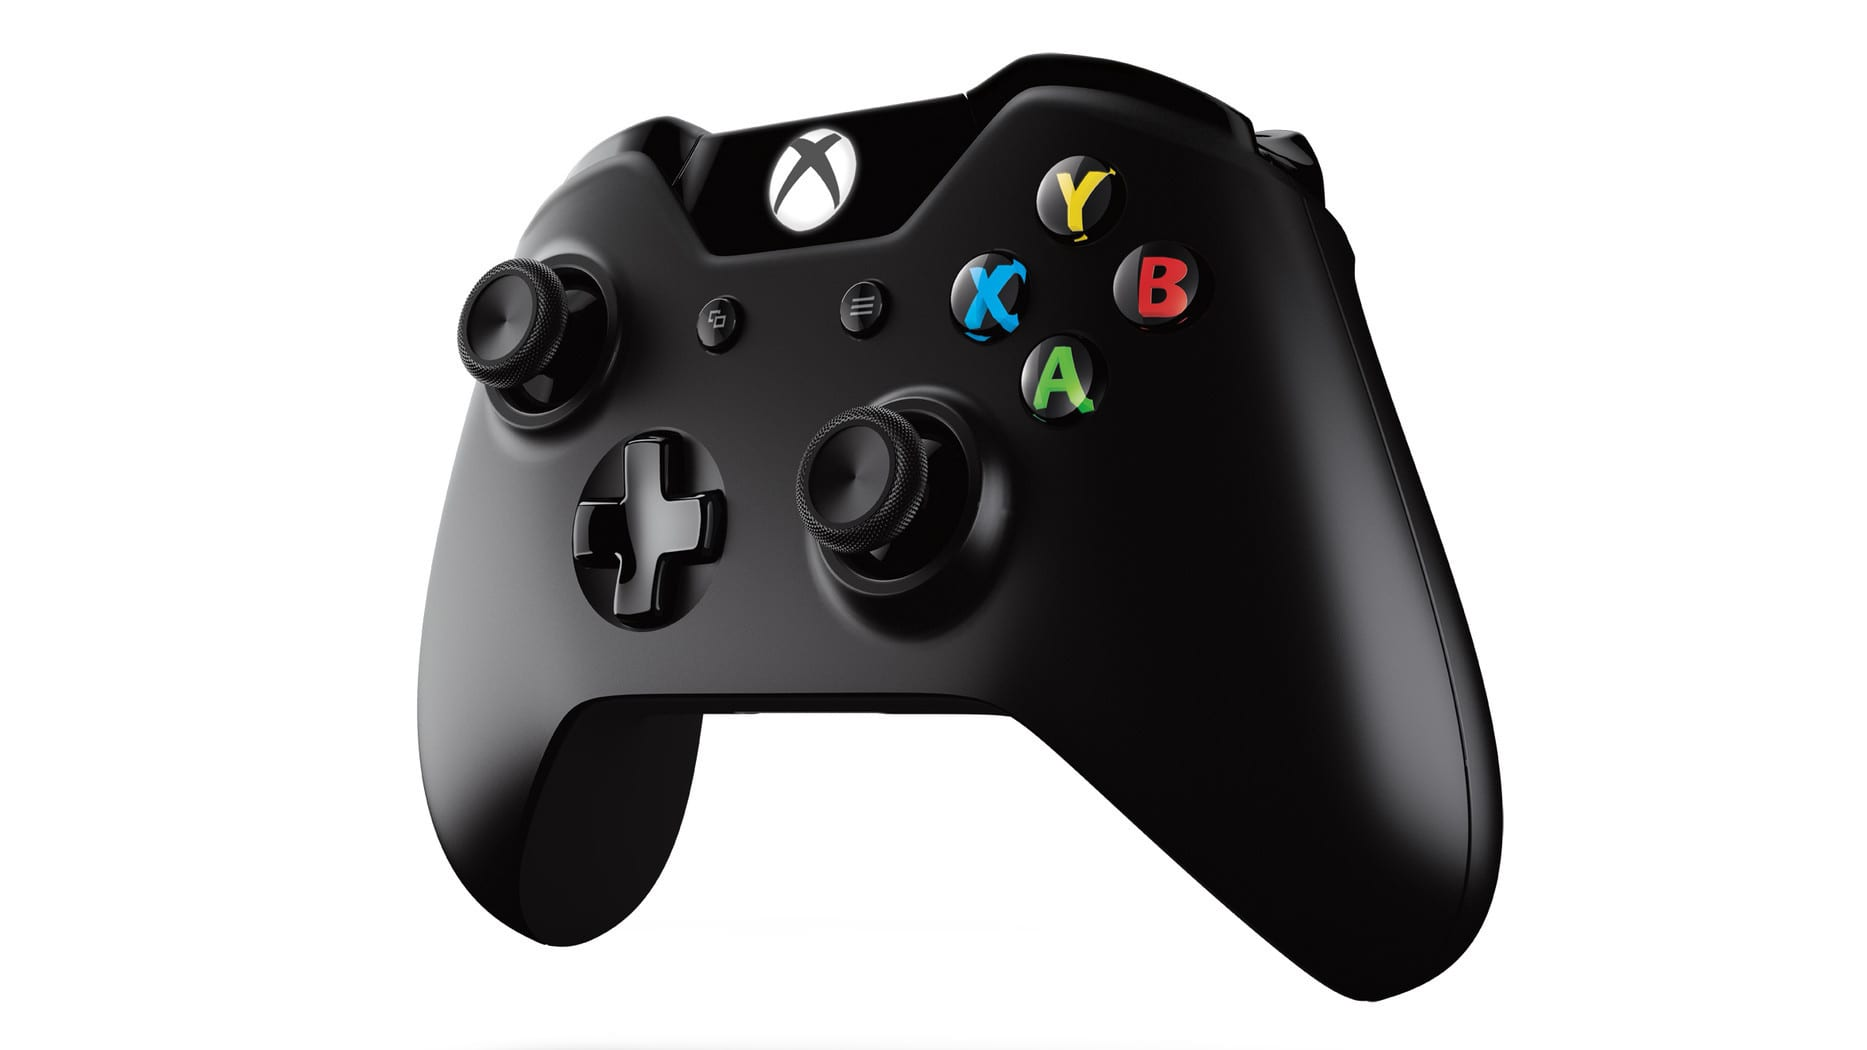 Turn off xbox one controller